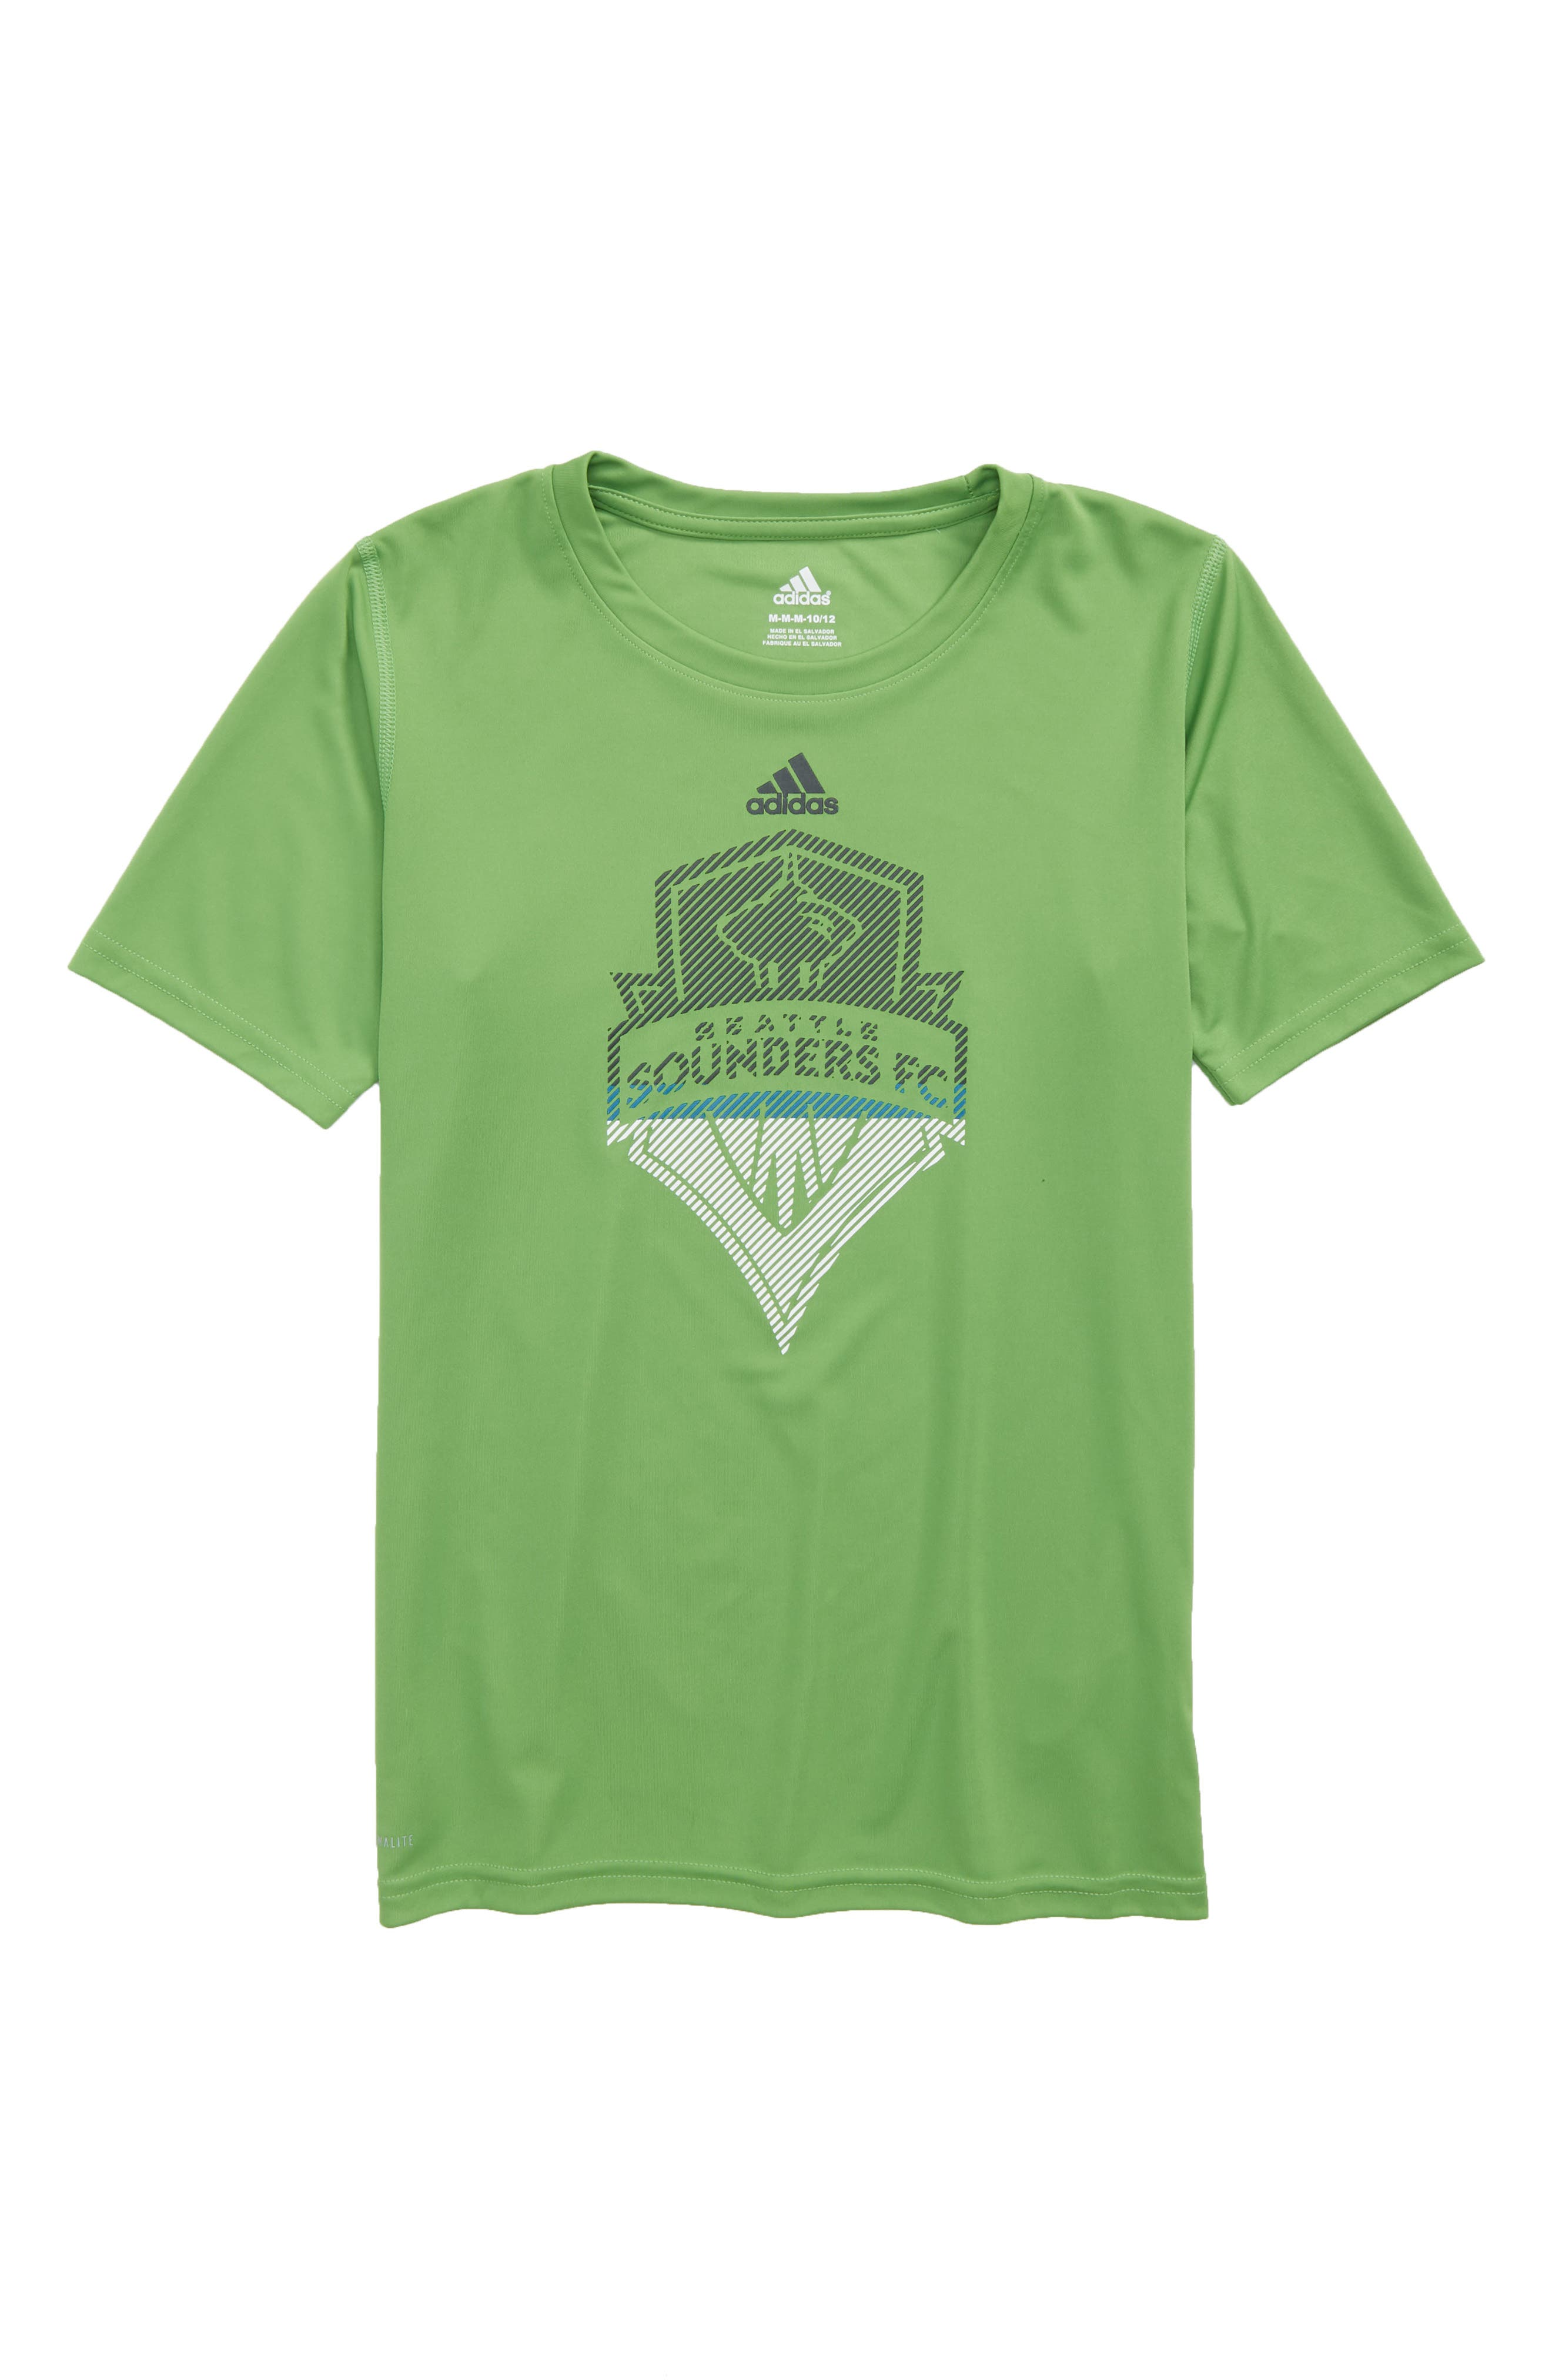 MLS Seattle Sounders FC Climalite<sup>®</sup> T-Shirt,                         Main,                         color, 300